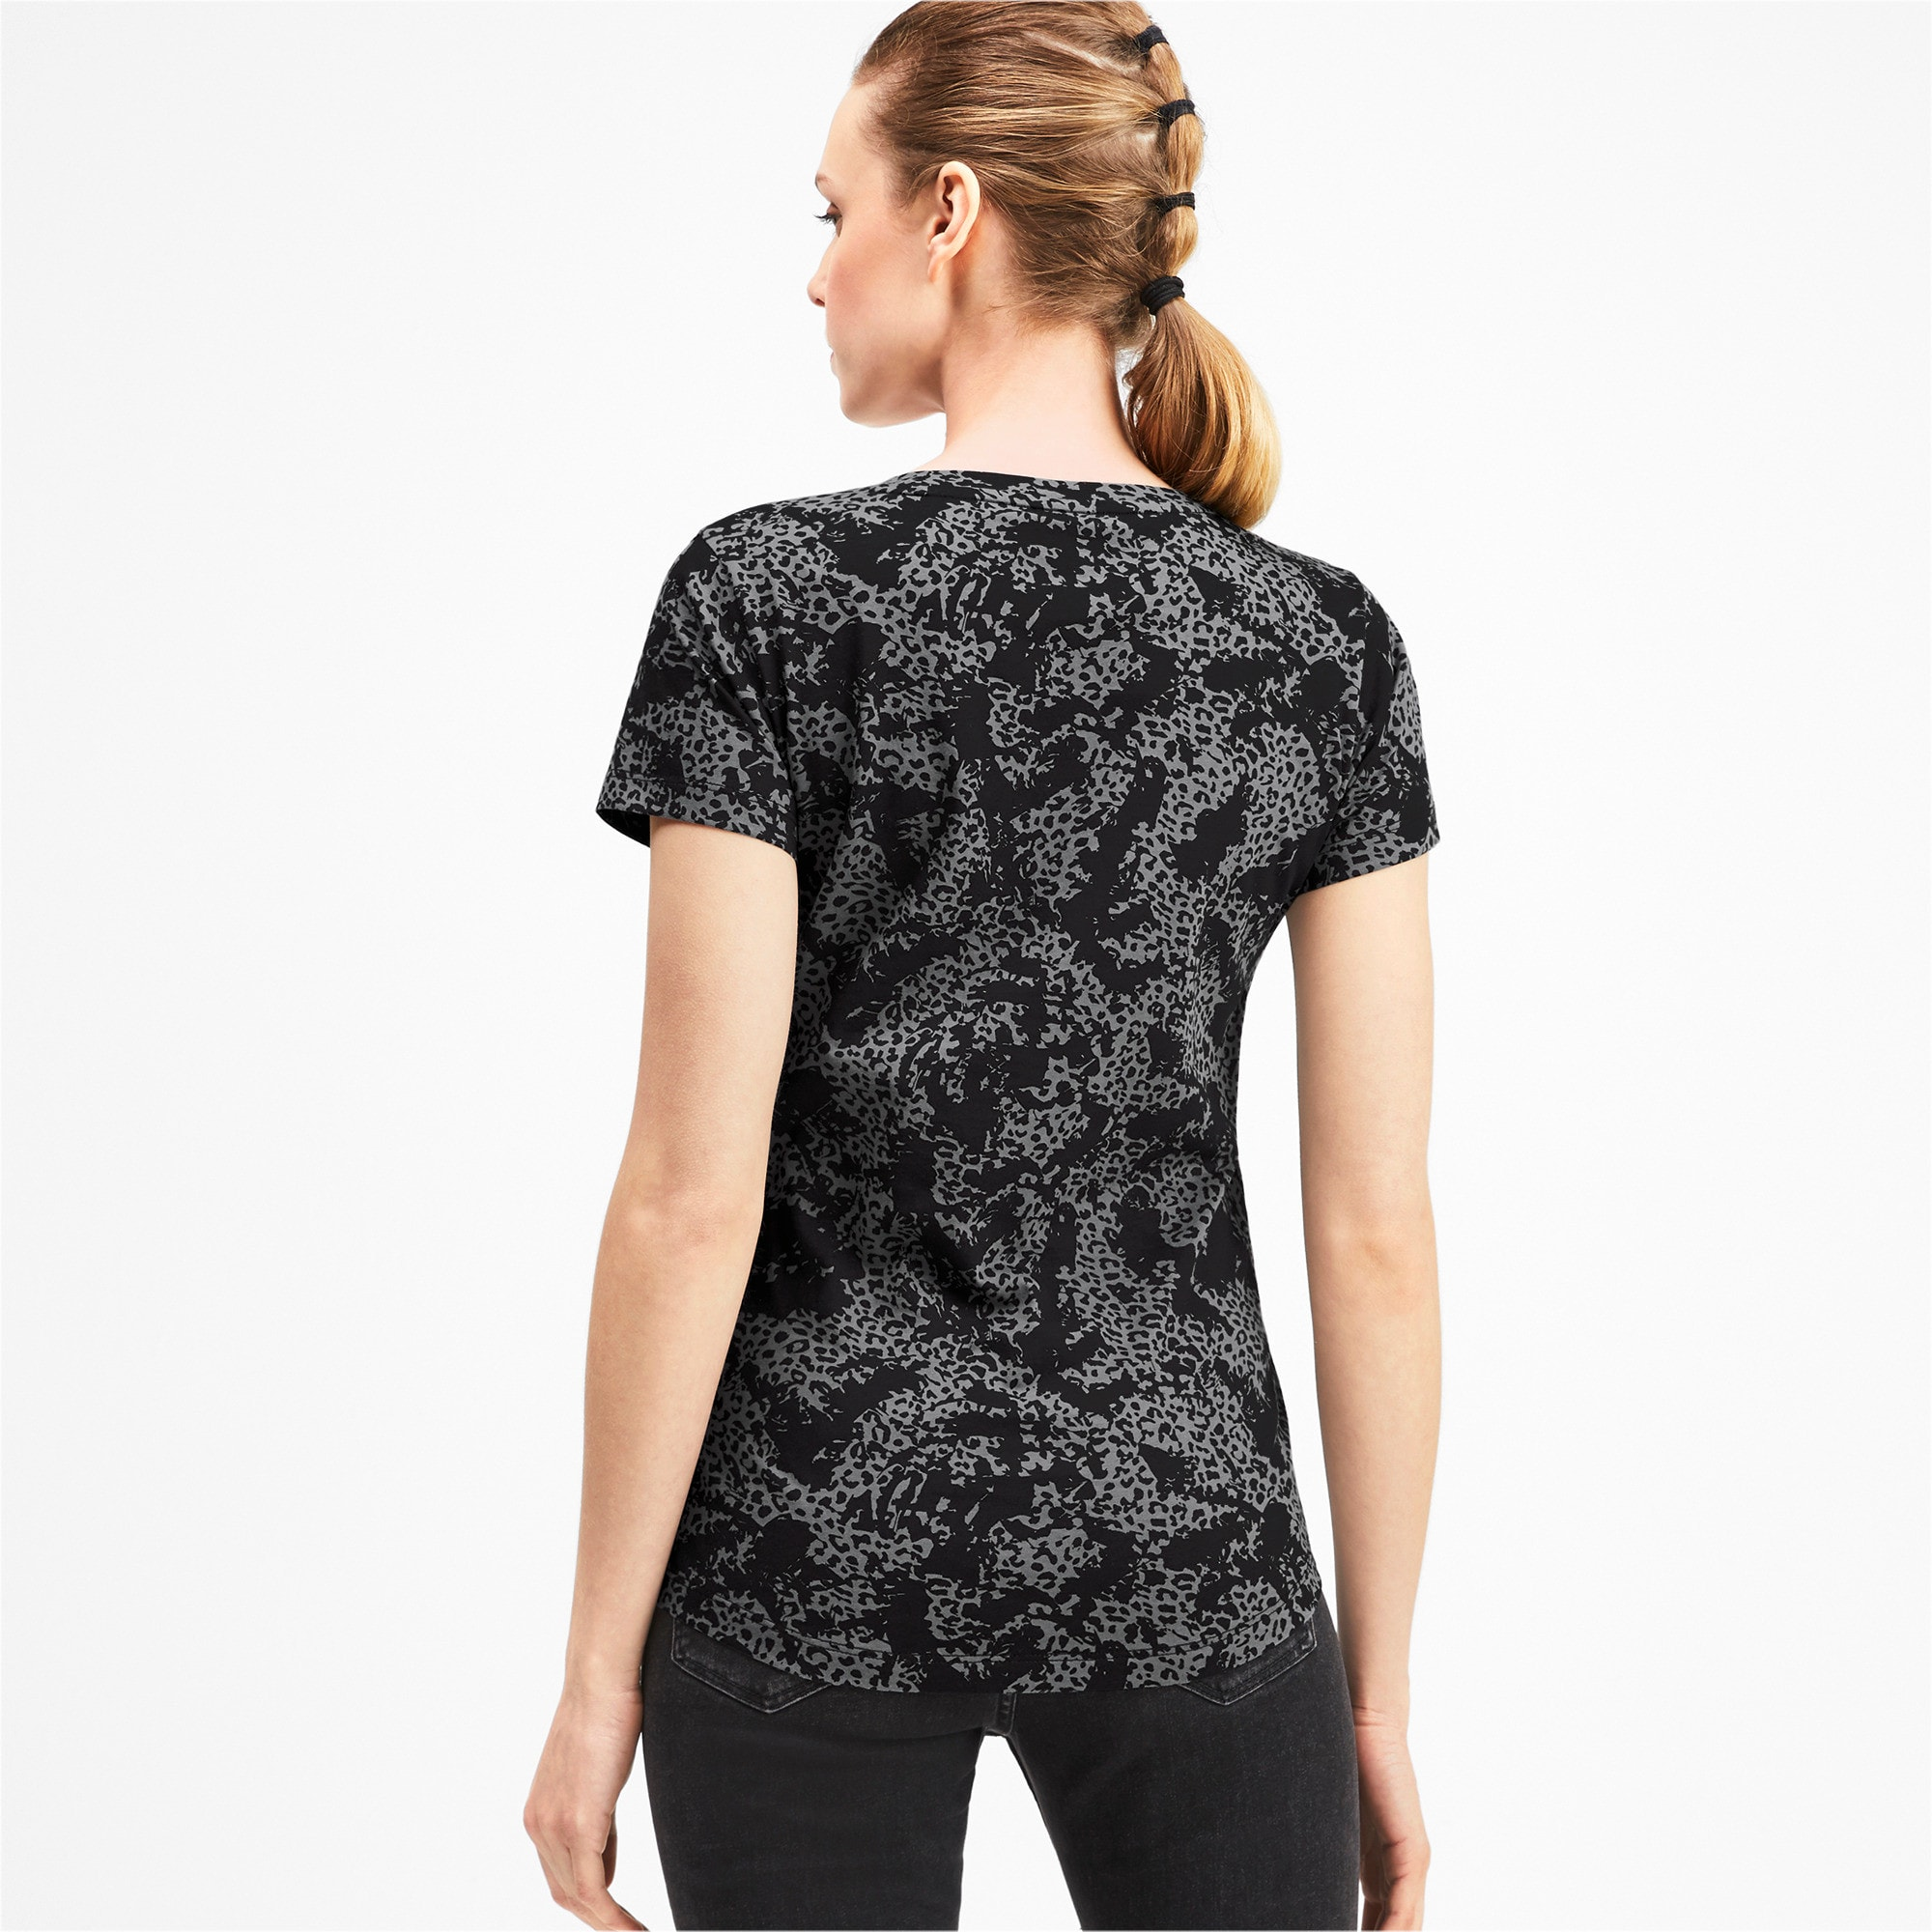 Thumbnail 2 of Elevated Essentials All-Over Print Women's Tee, Puma Black, medium-IND